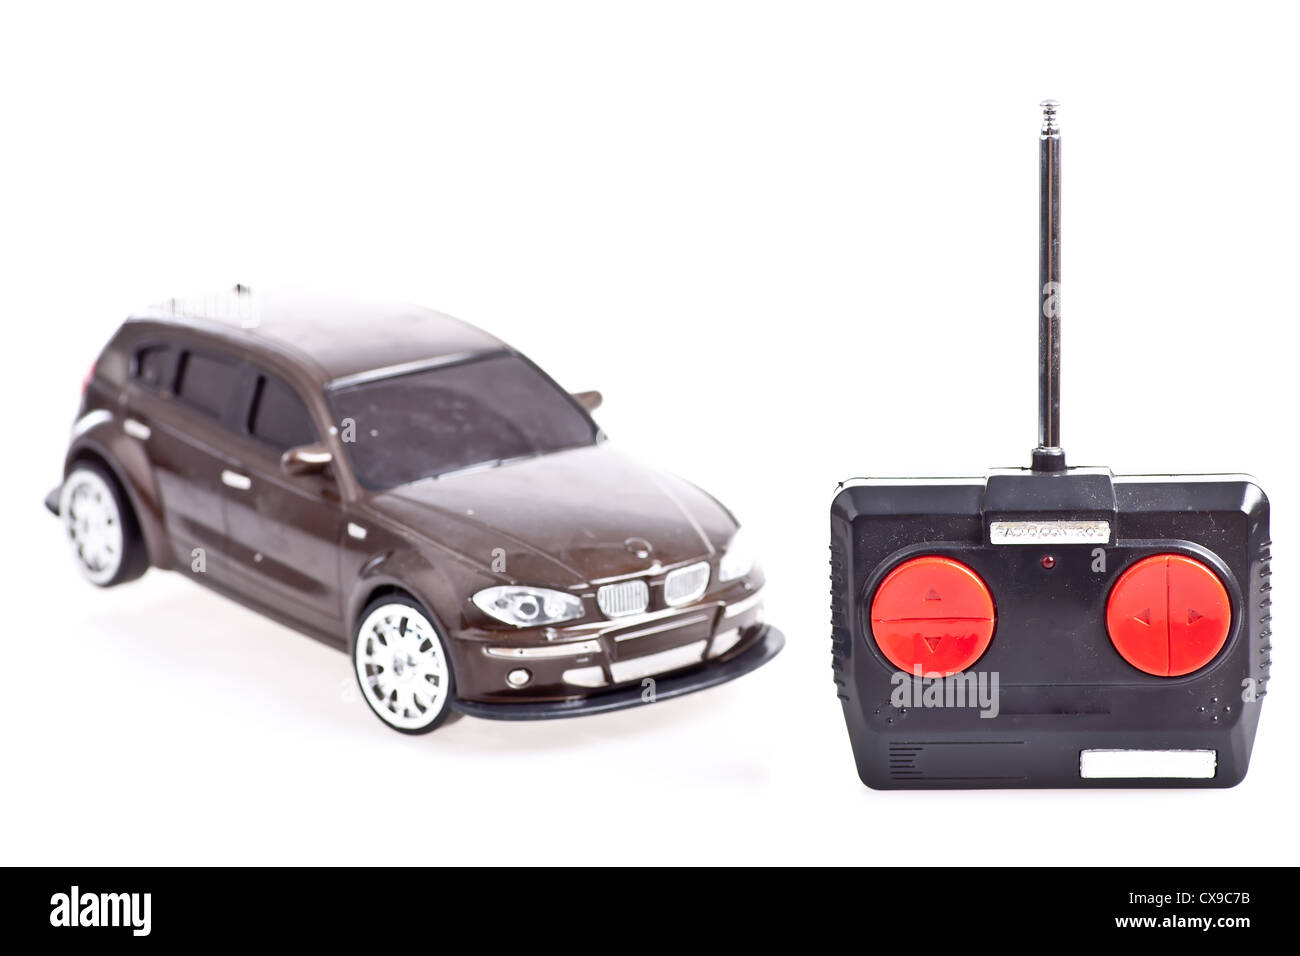 A radio controlled toy car on white background - Stock Image